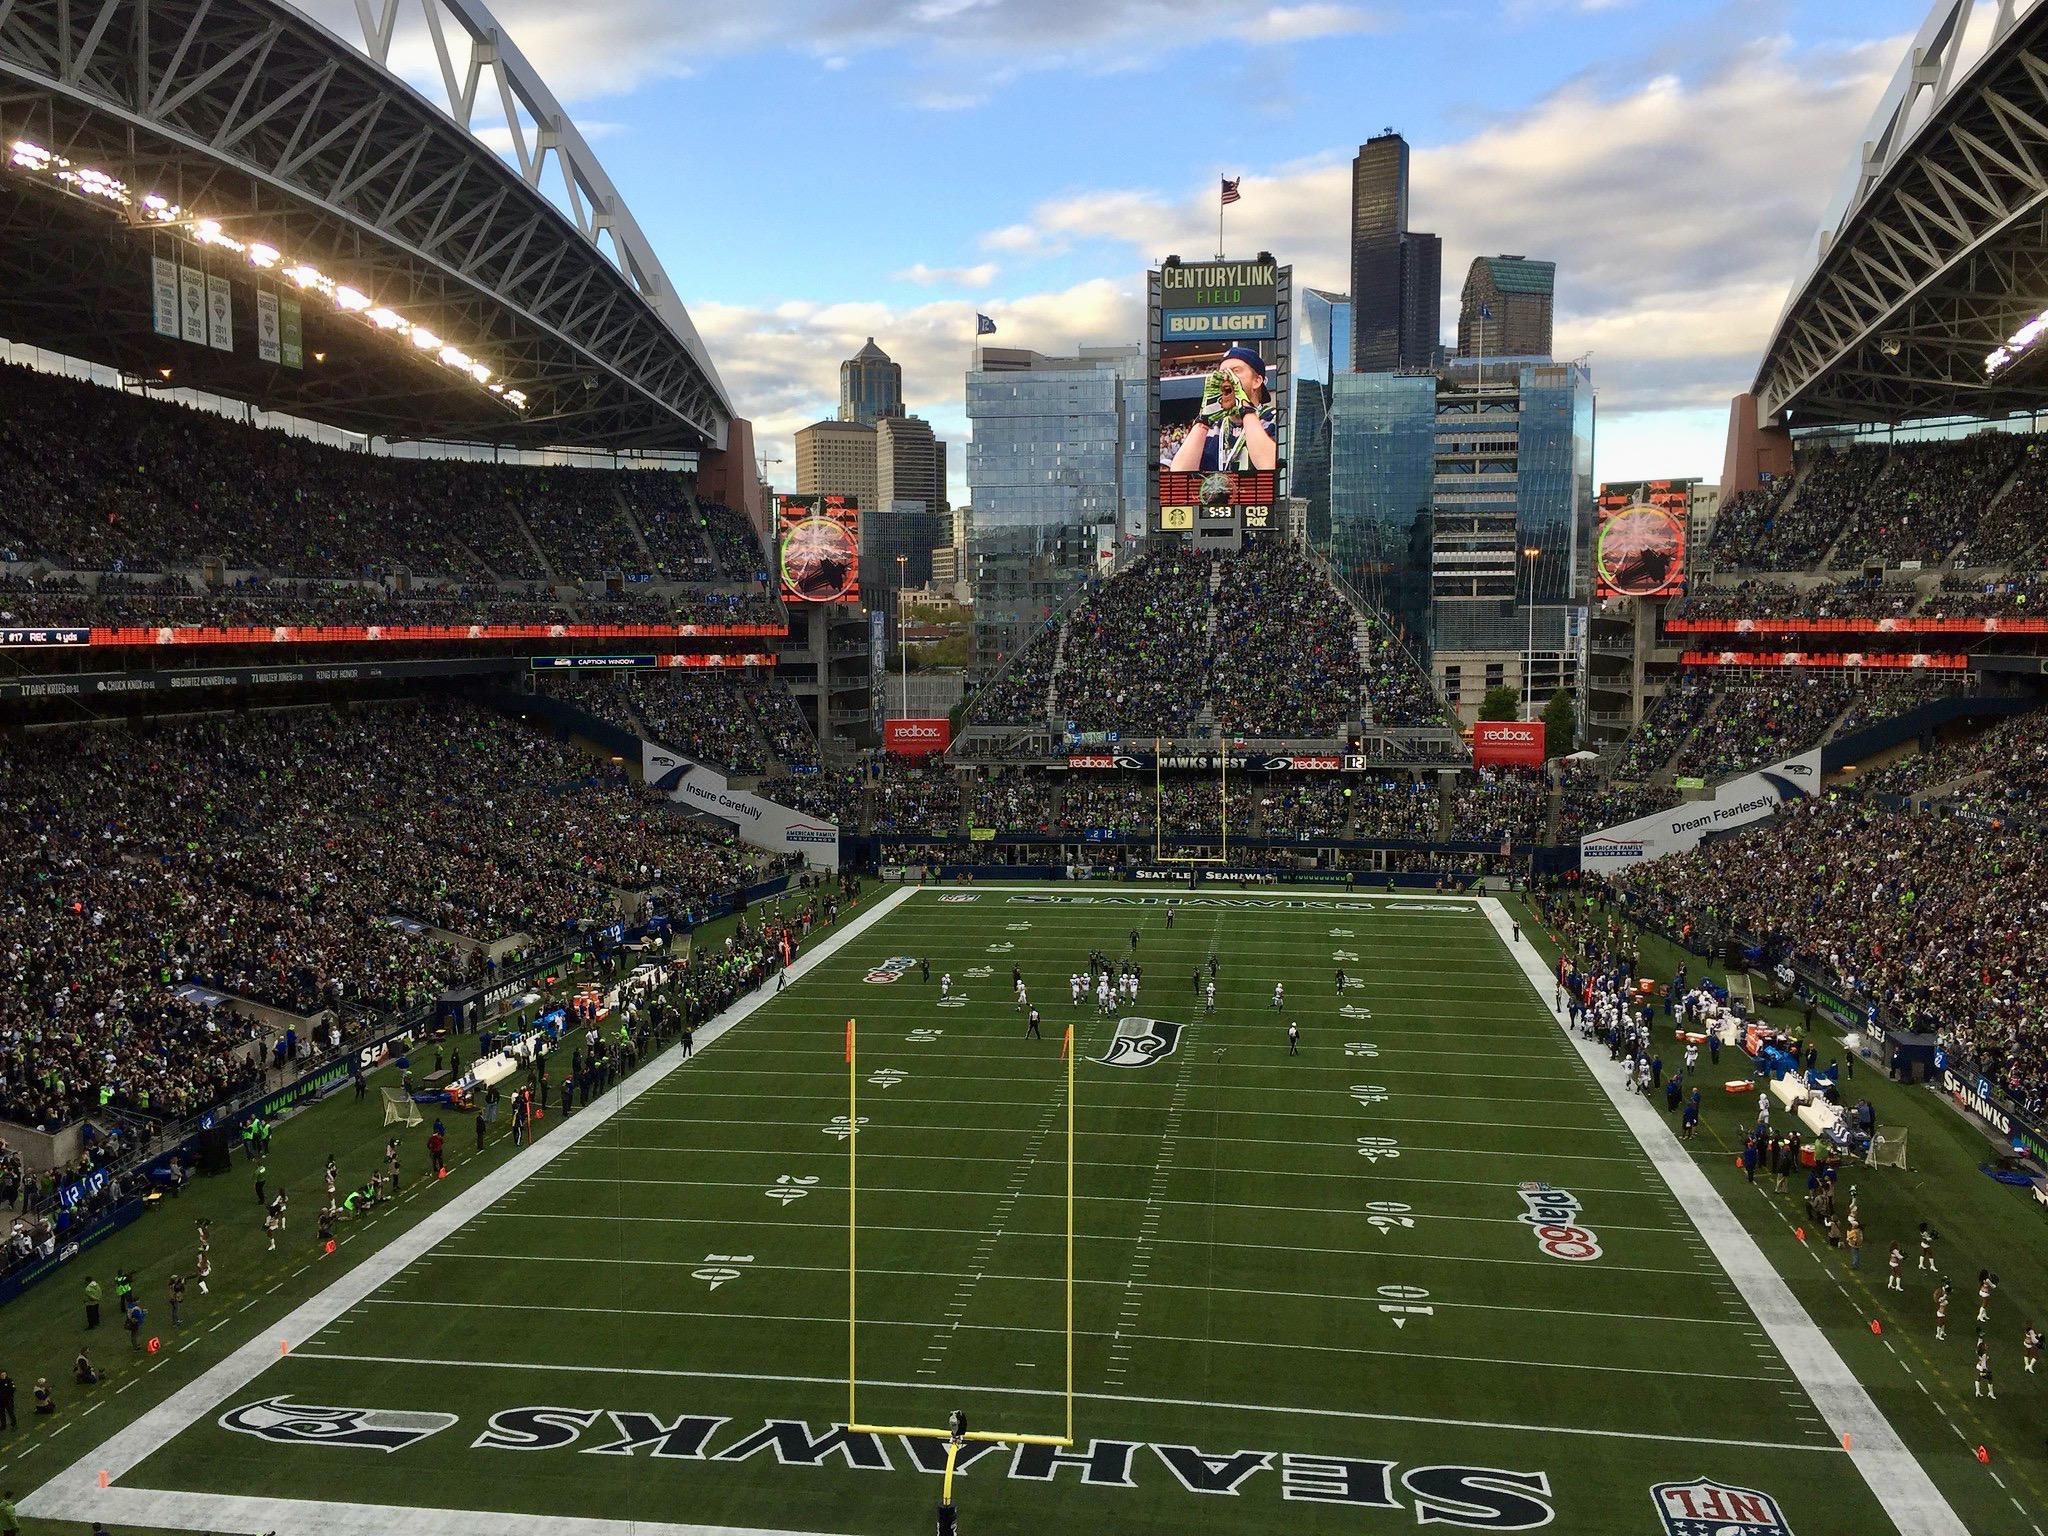 Seattle's CenturyLink Field, home of the Seahawks and Sounders, to be renamed Lumen Field